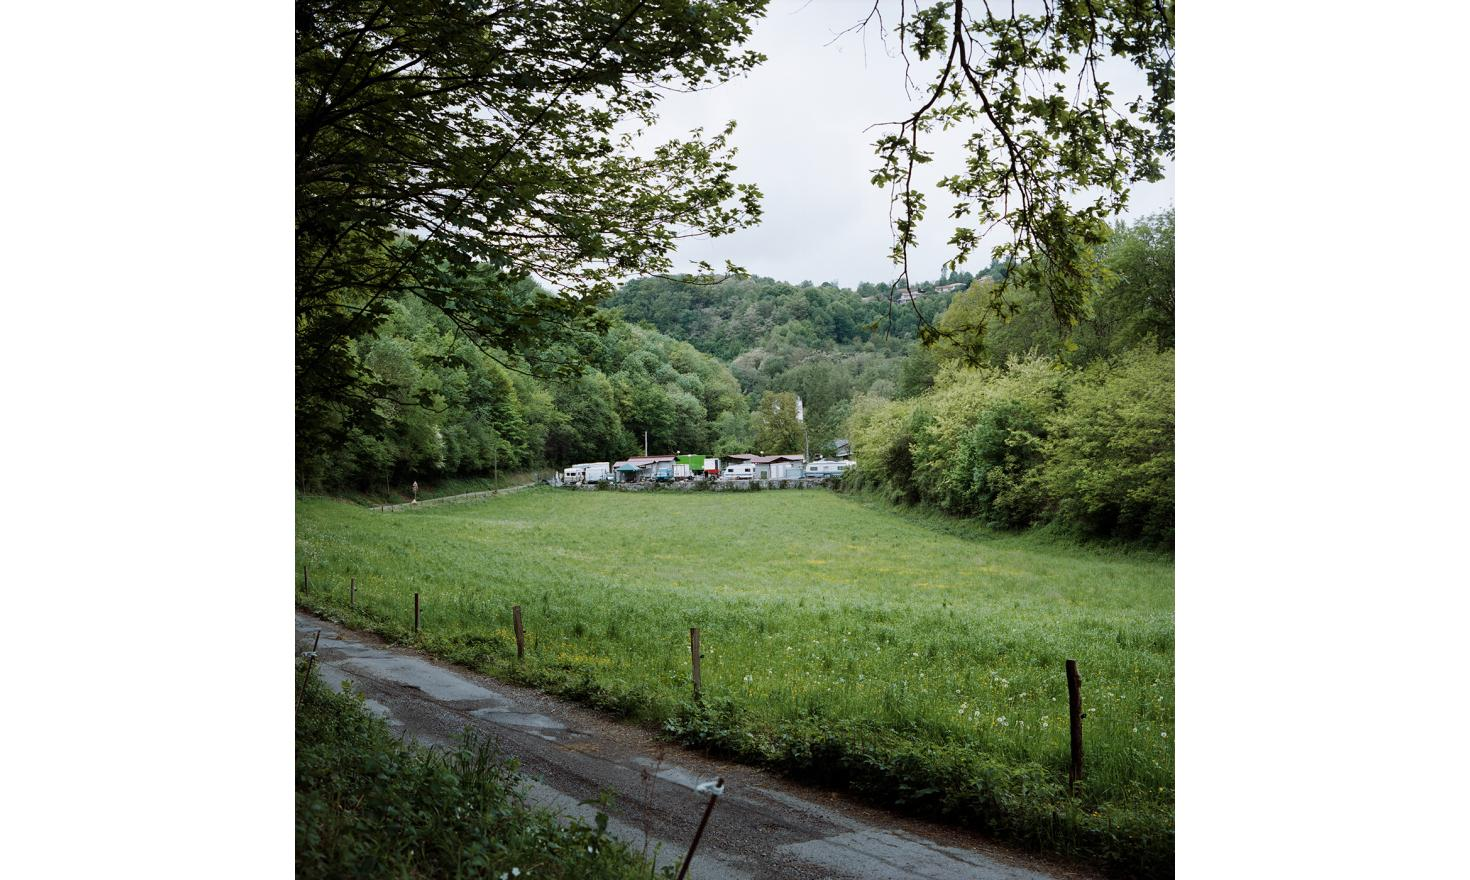 """The camp of the rat bridge, Saint-Girons. It is in this"""" area for the Travellers"""" Pouet settled with relatives and friends, his fiancee Pomme, Paquita his mother, Priscilla, Marius called the Fat, Gonzo the Spanish, Lutin..."""